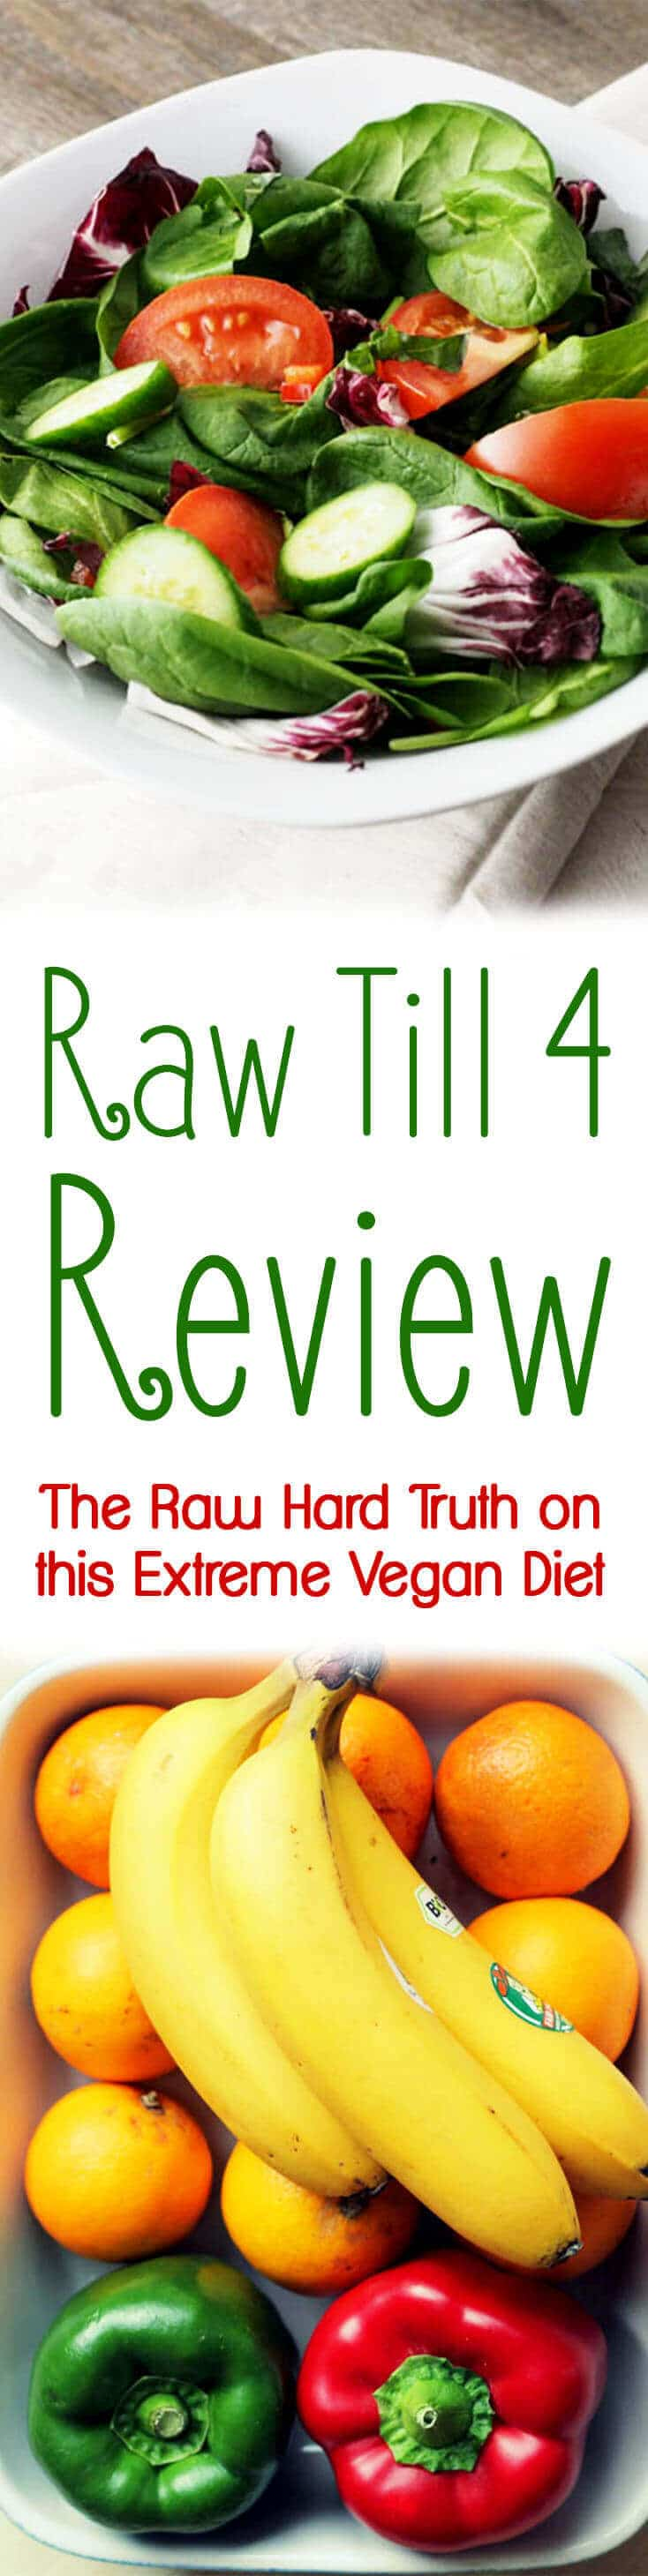 Want to try Raw Till 4? We looked into the research in this ever-growing trend to let you know if its really the miracle diet it claims to be.